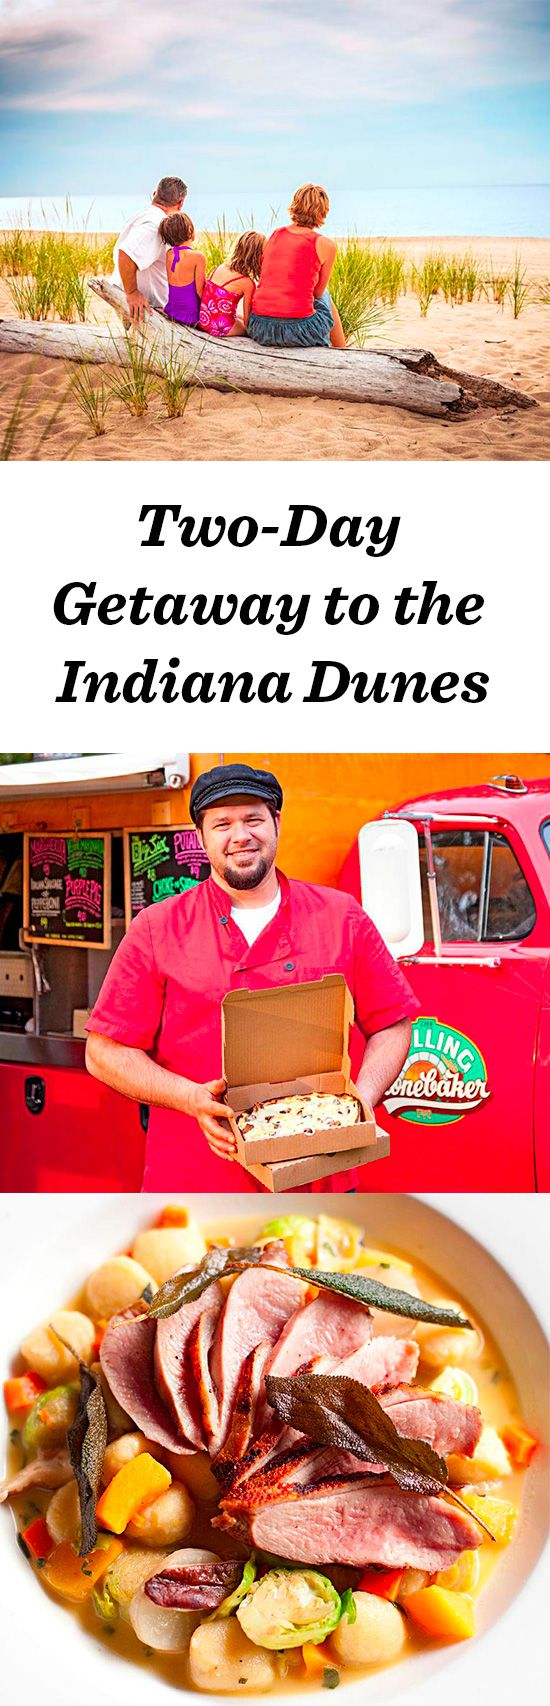 Enjoy 15 miles of Lake Michigan coastline at the Indiana Dunes, one hour southeast of Chicago: http://www.midwestliving.com/travel/indiana/indiana-dunes/two–day-getaway-to-indiana-dunes/ #indiana #indianadunes #vacation